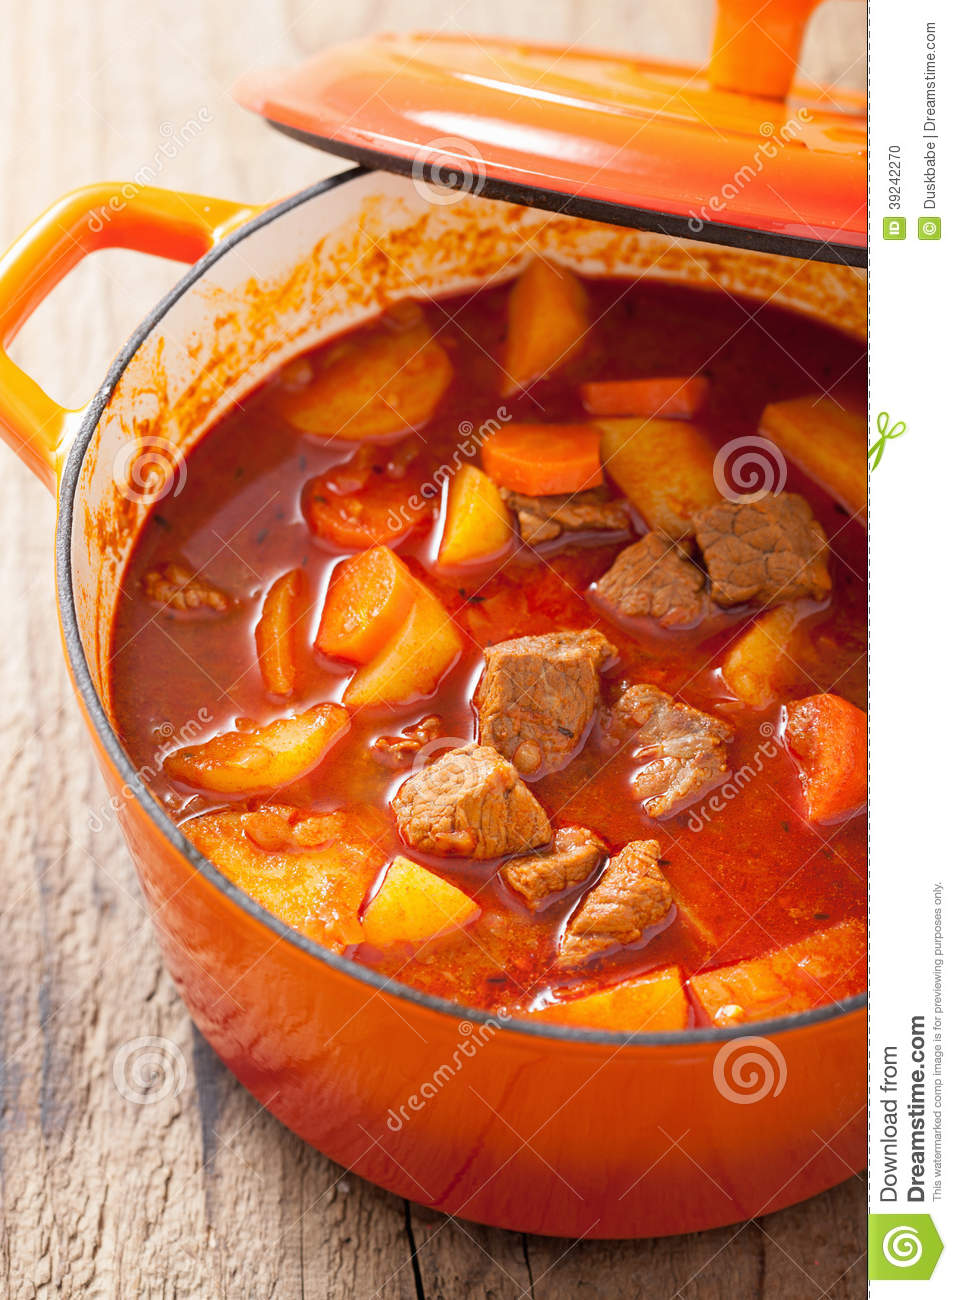 Beef Stew With Potato And Carrot In Red Casserole Stock Photo - Image ...